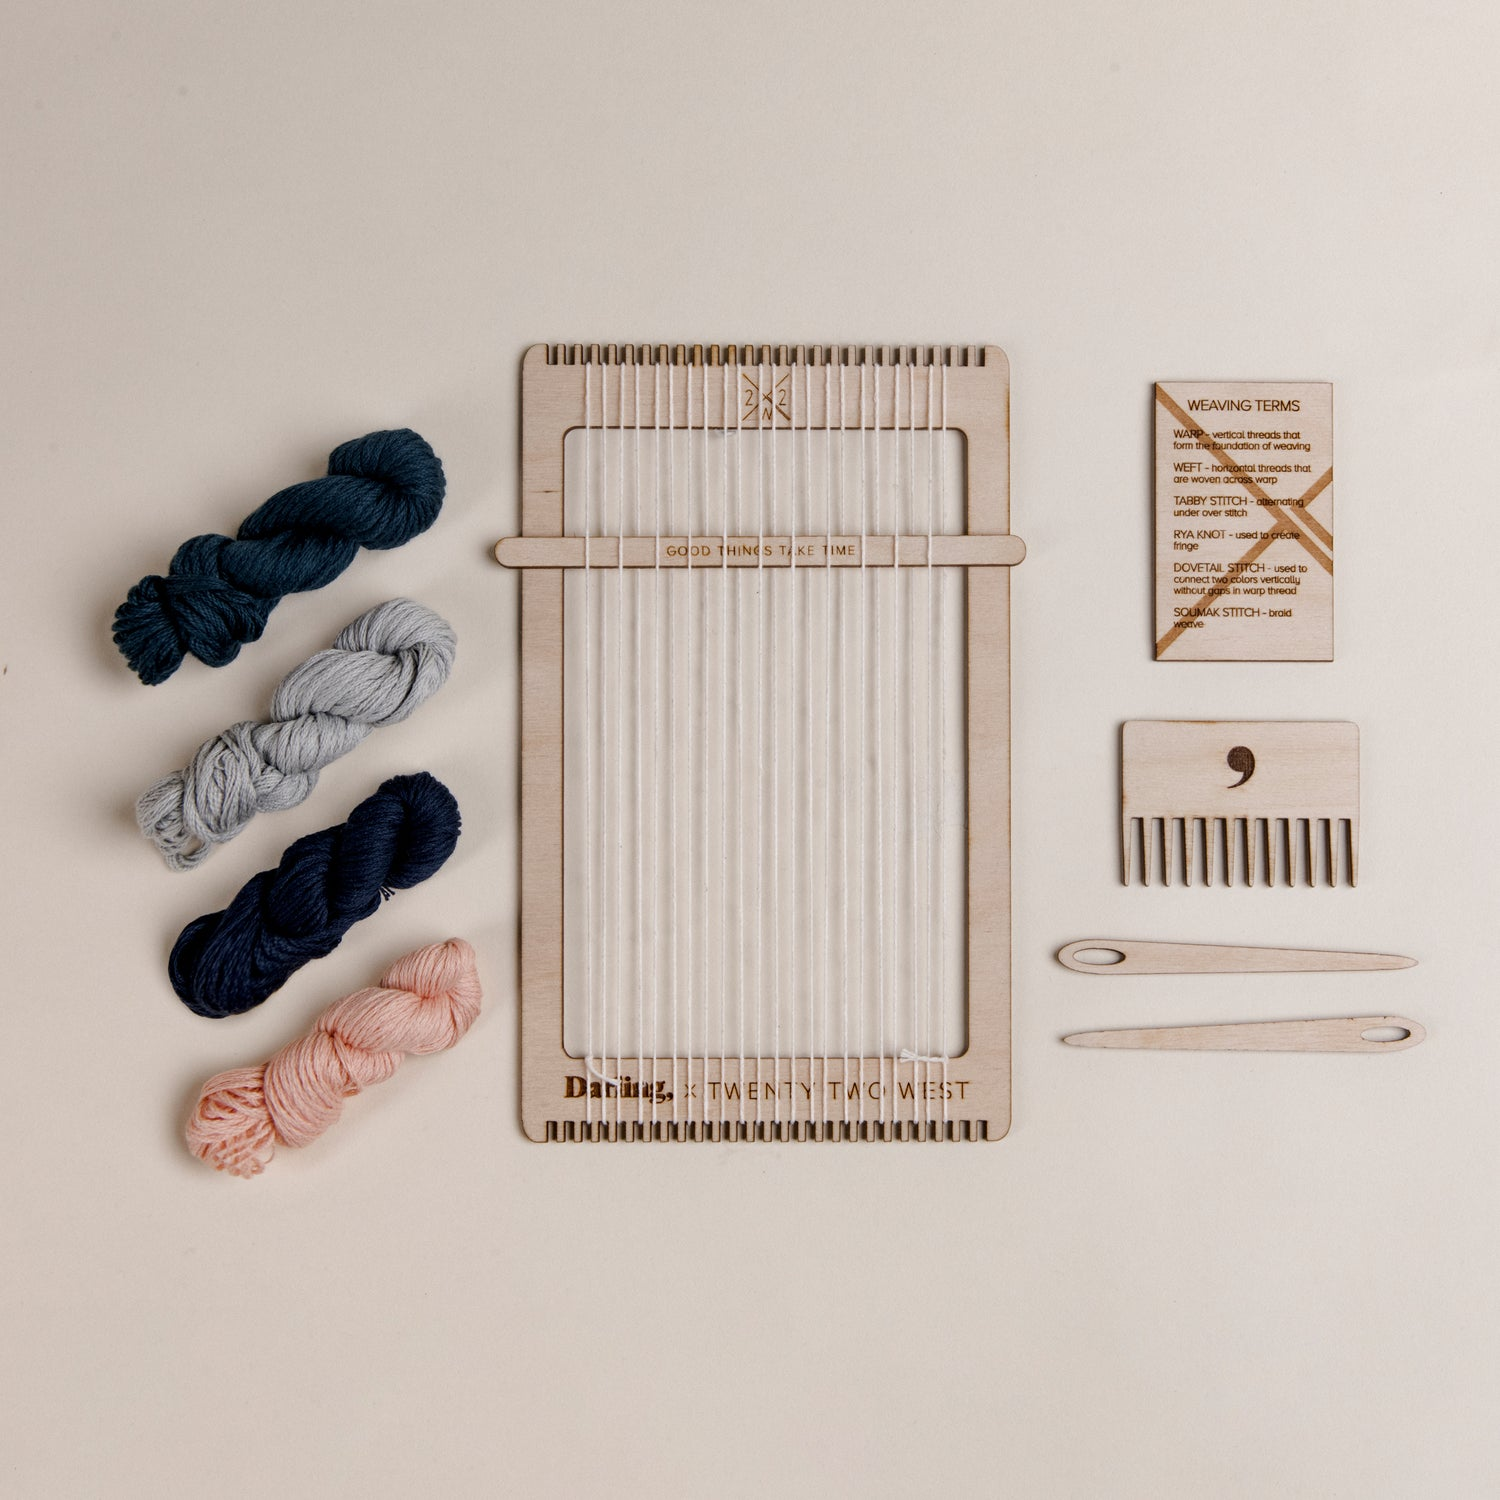 Darling Loom Weaving Kit